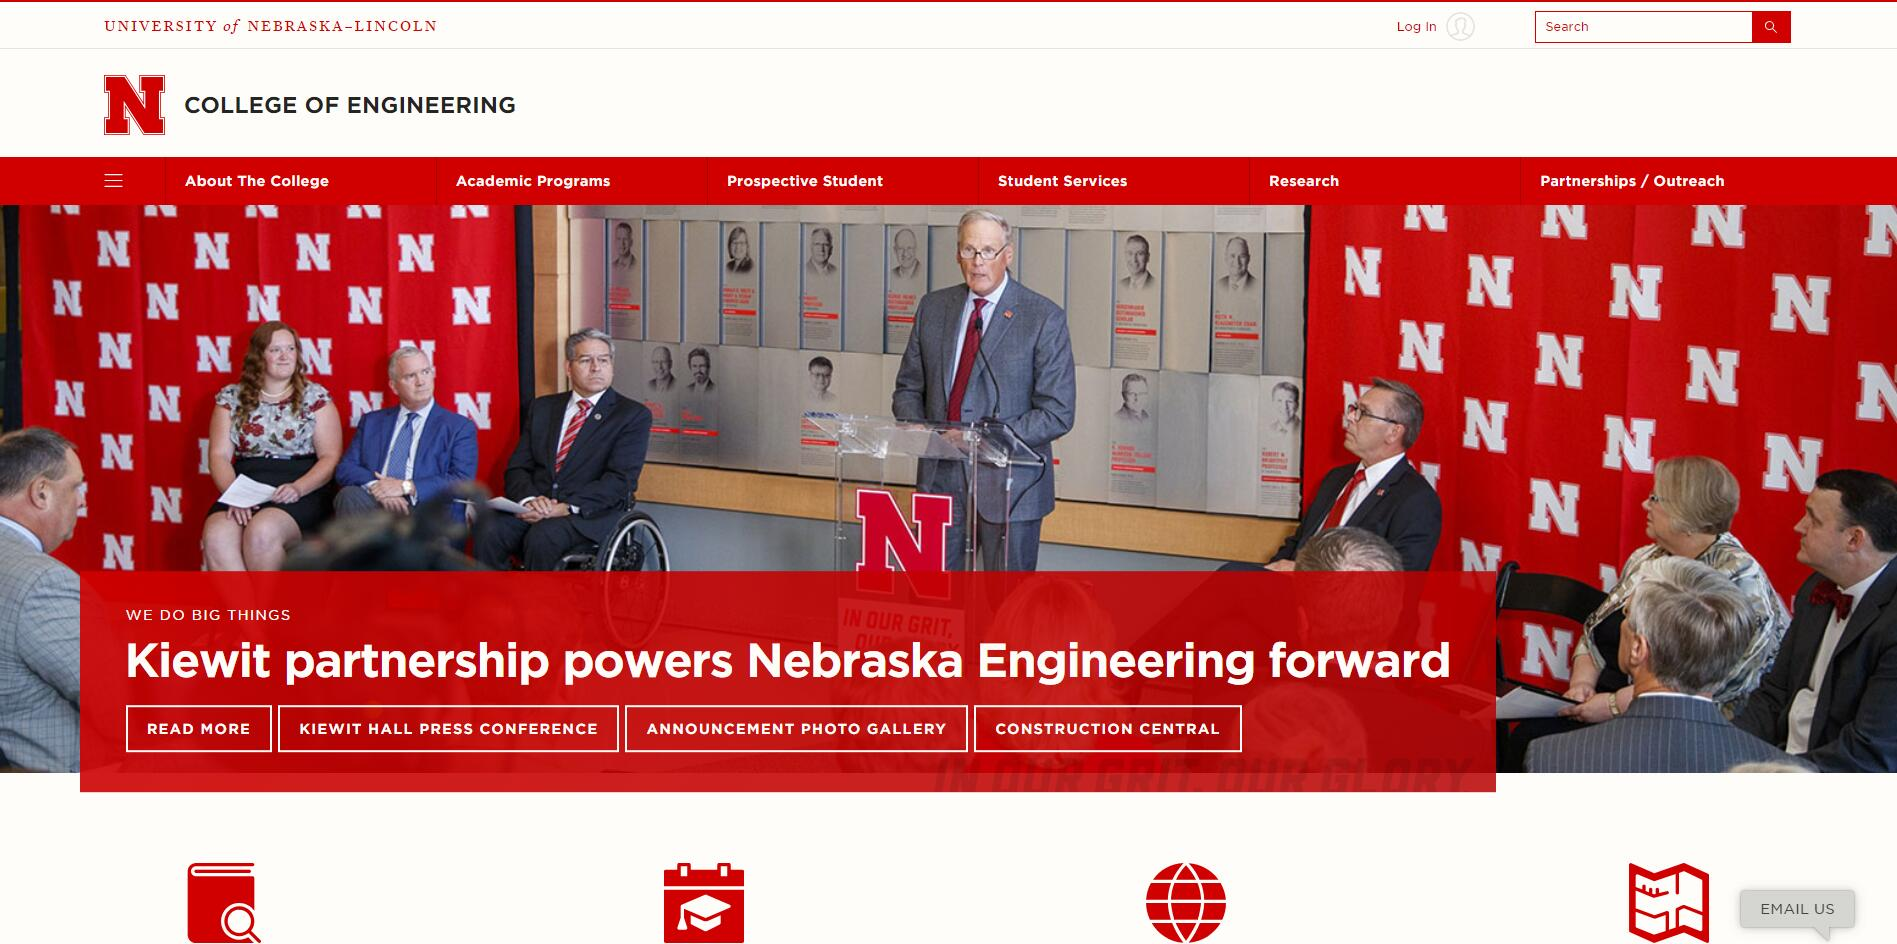 The College of Engineering at University of Nebraska--Lincoln